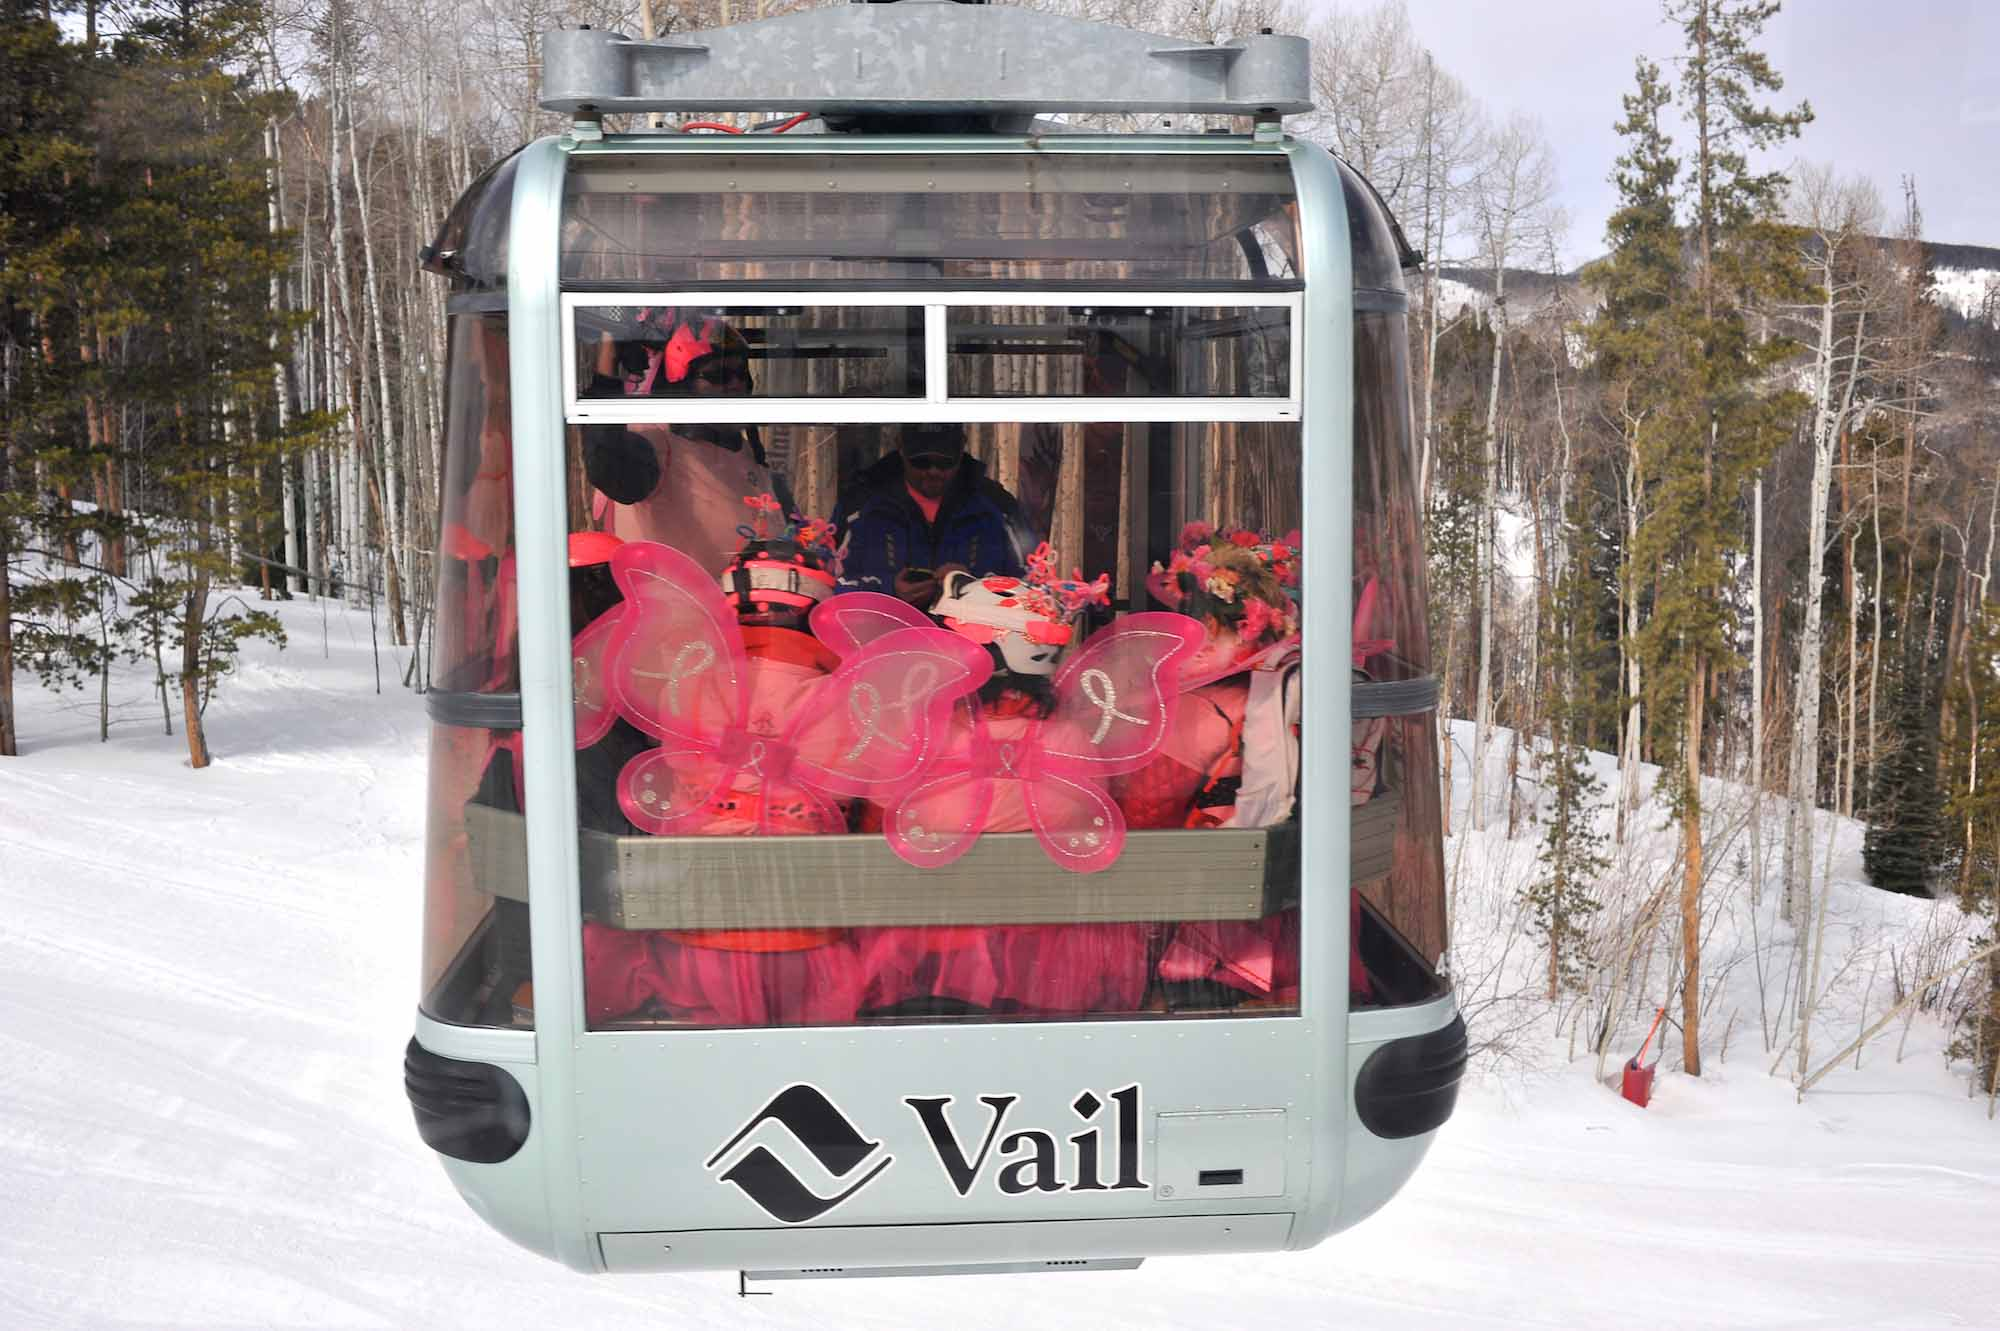 Participants in the Pink Vail fundraiser to fight breast cancer ride the Eagle Bahn Gondola to Eagle's Nest in Vail, Colo. on Saturday, April 5, 2014. Of its 1,625 participants, Pink Vail raised a total of $386,535 which goes directly to the Shaw Regional Cancer Center.